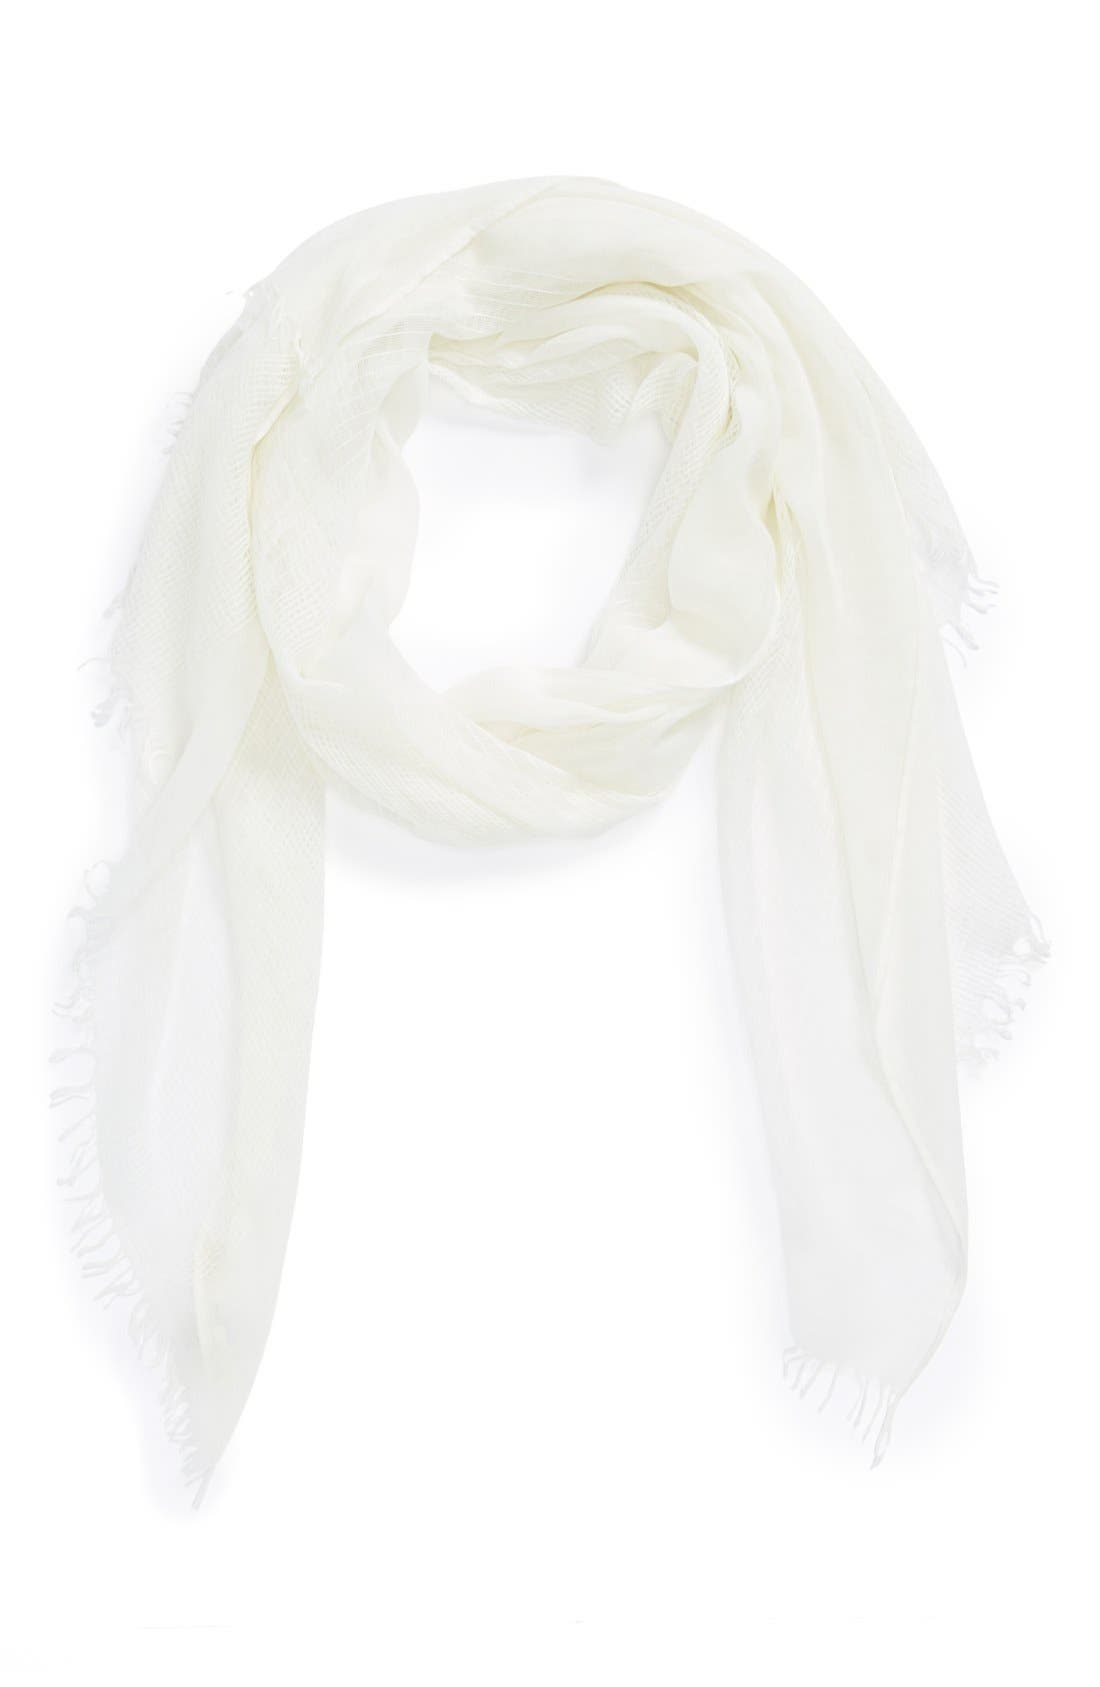 MICHAEL STARS 'Cool Breeze' Woven Scarf, Main, color, 100